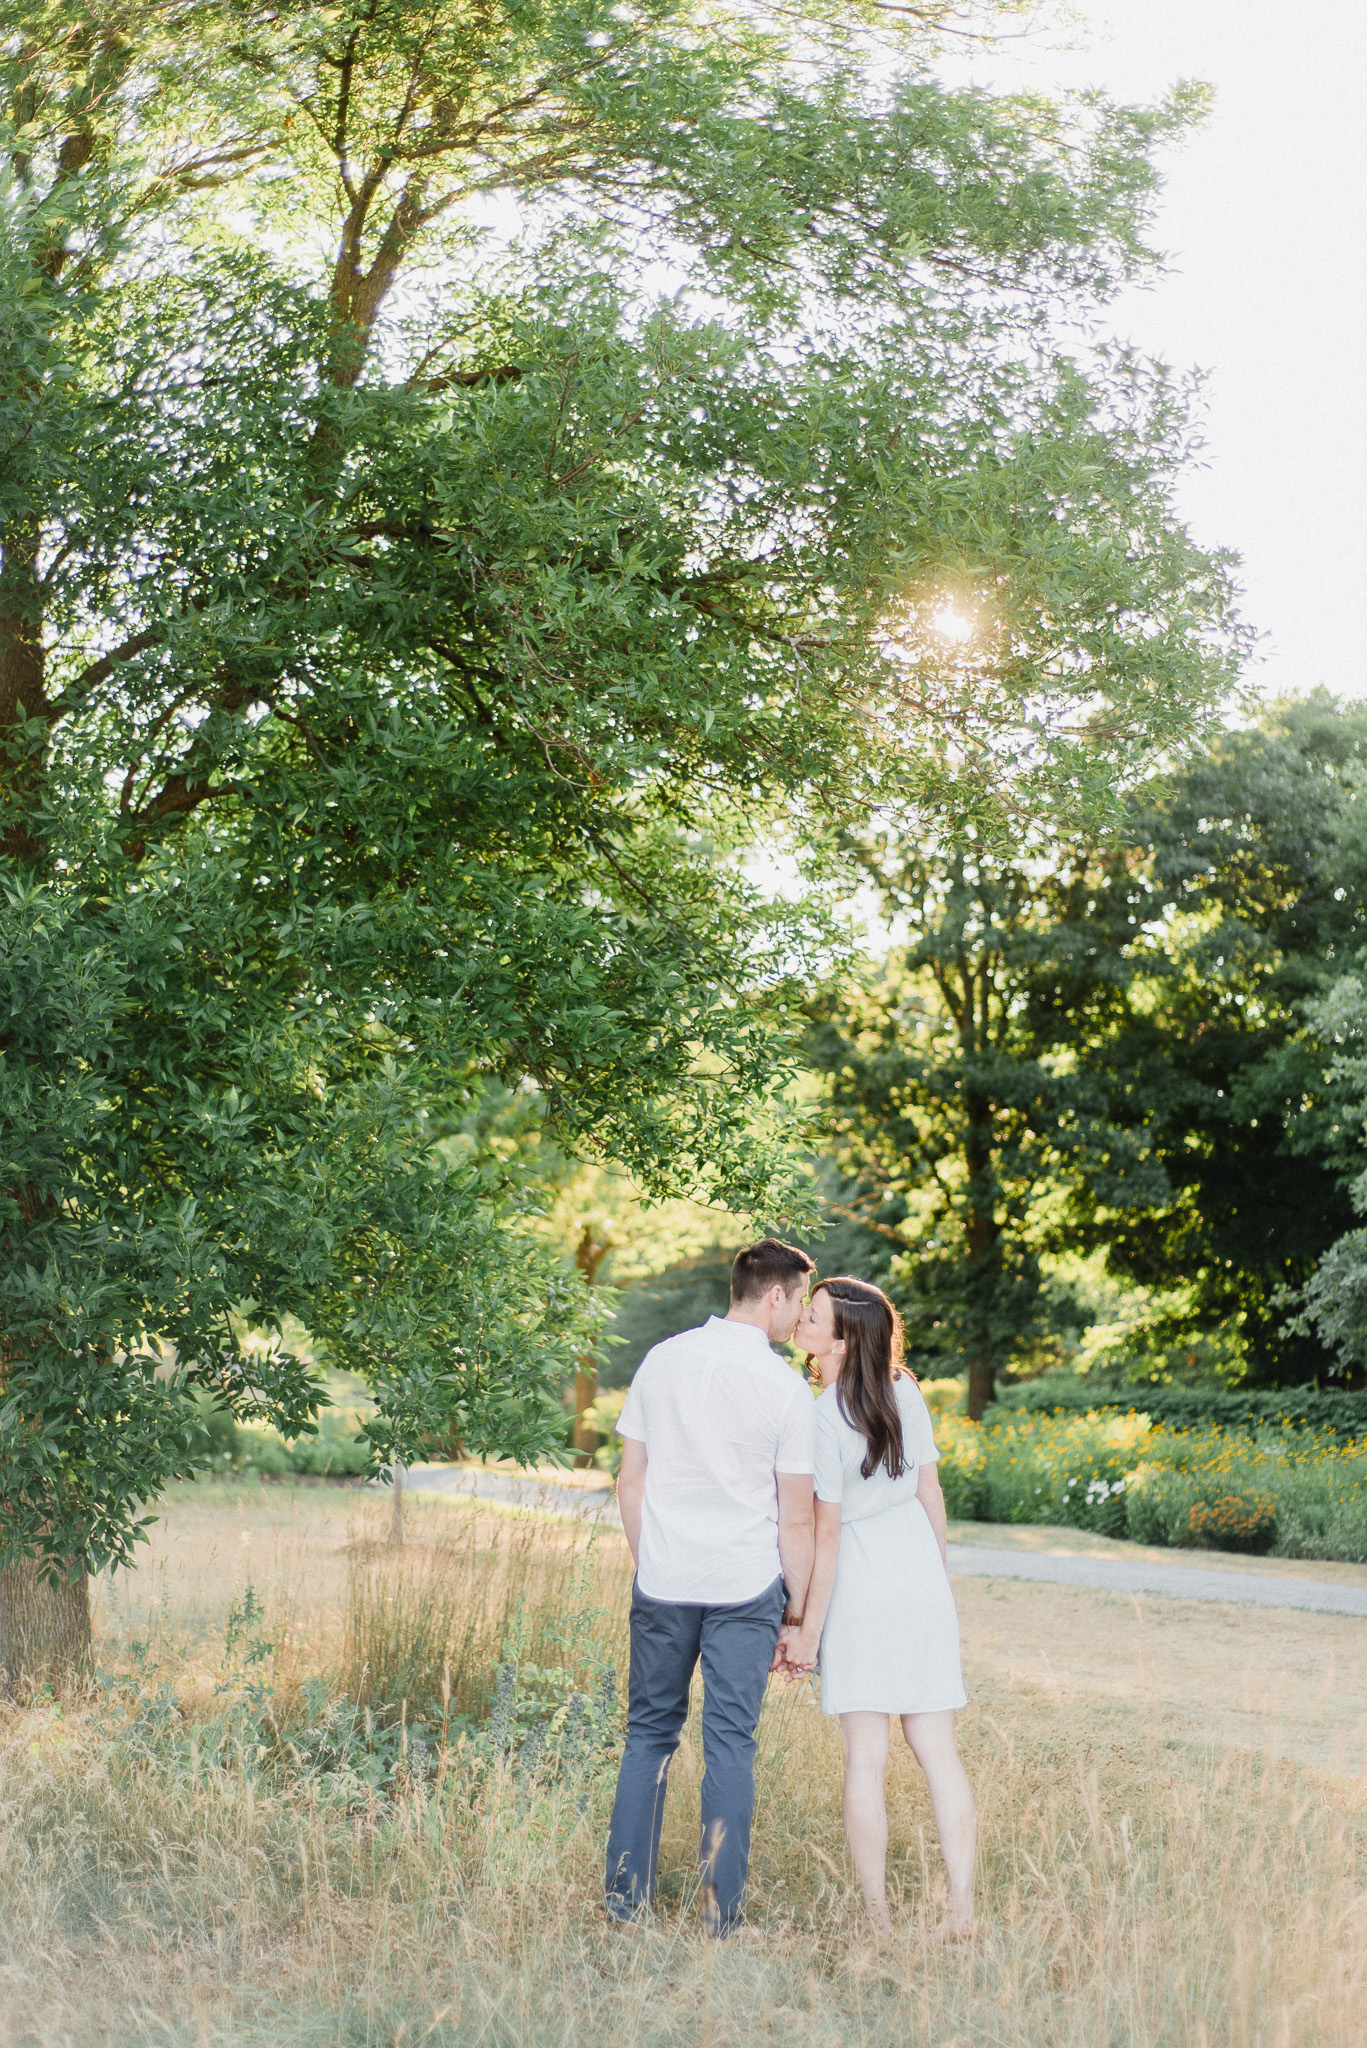 Arboretum Sunnidale Park engagement photos by Jenn Kavanagh Photography